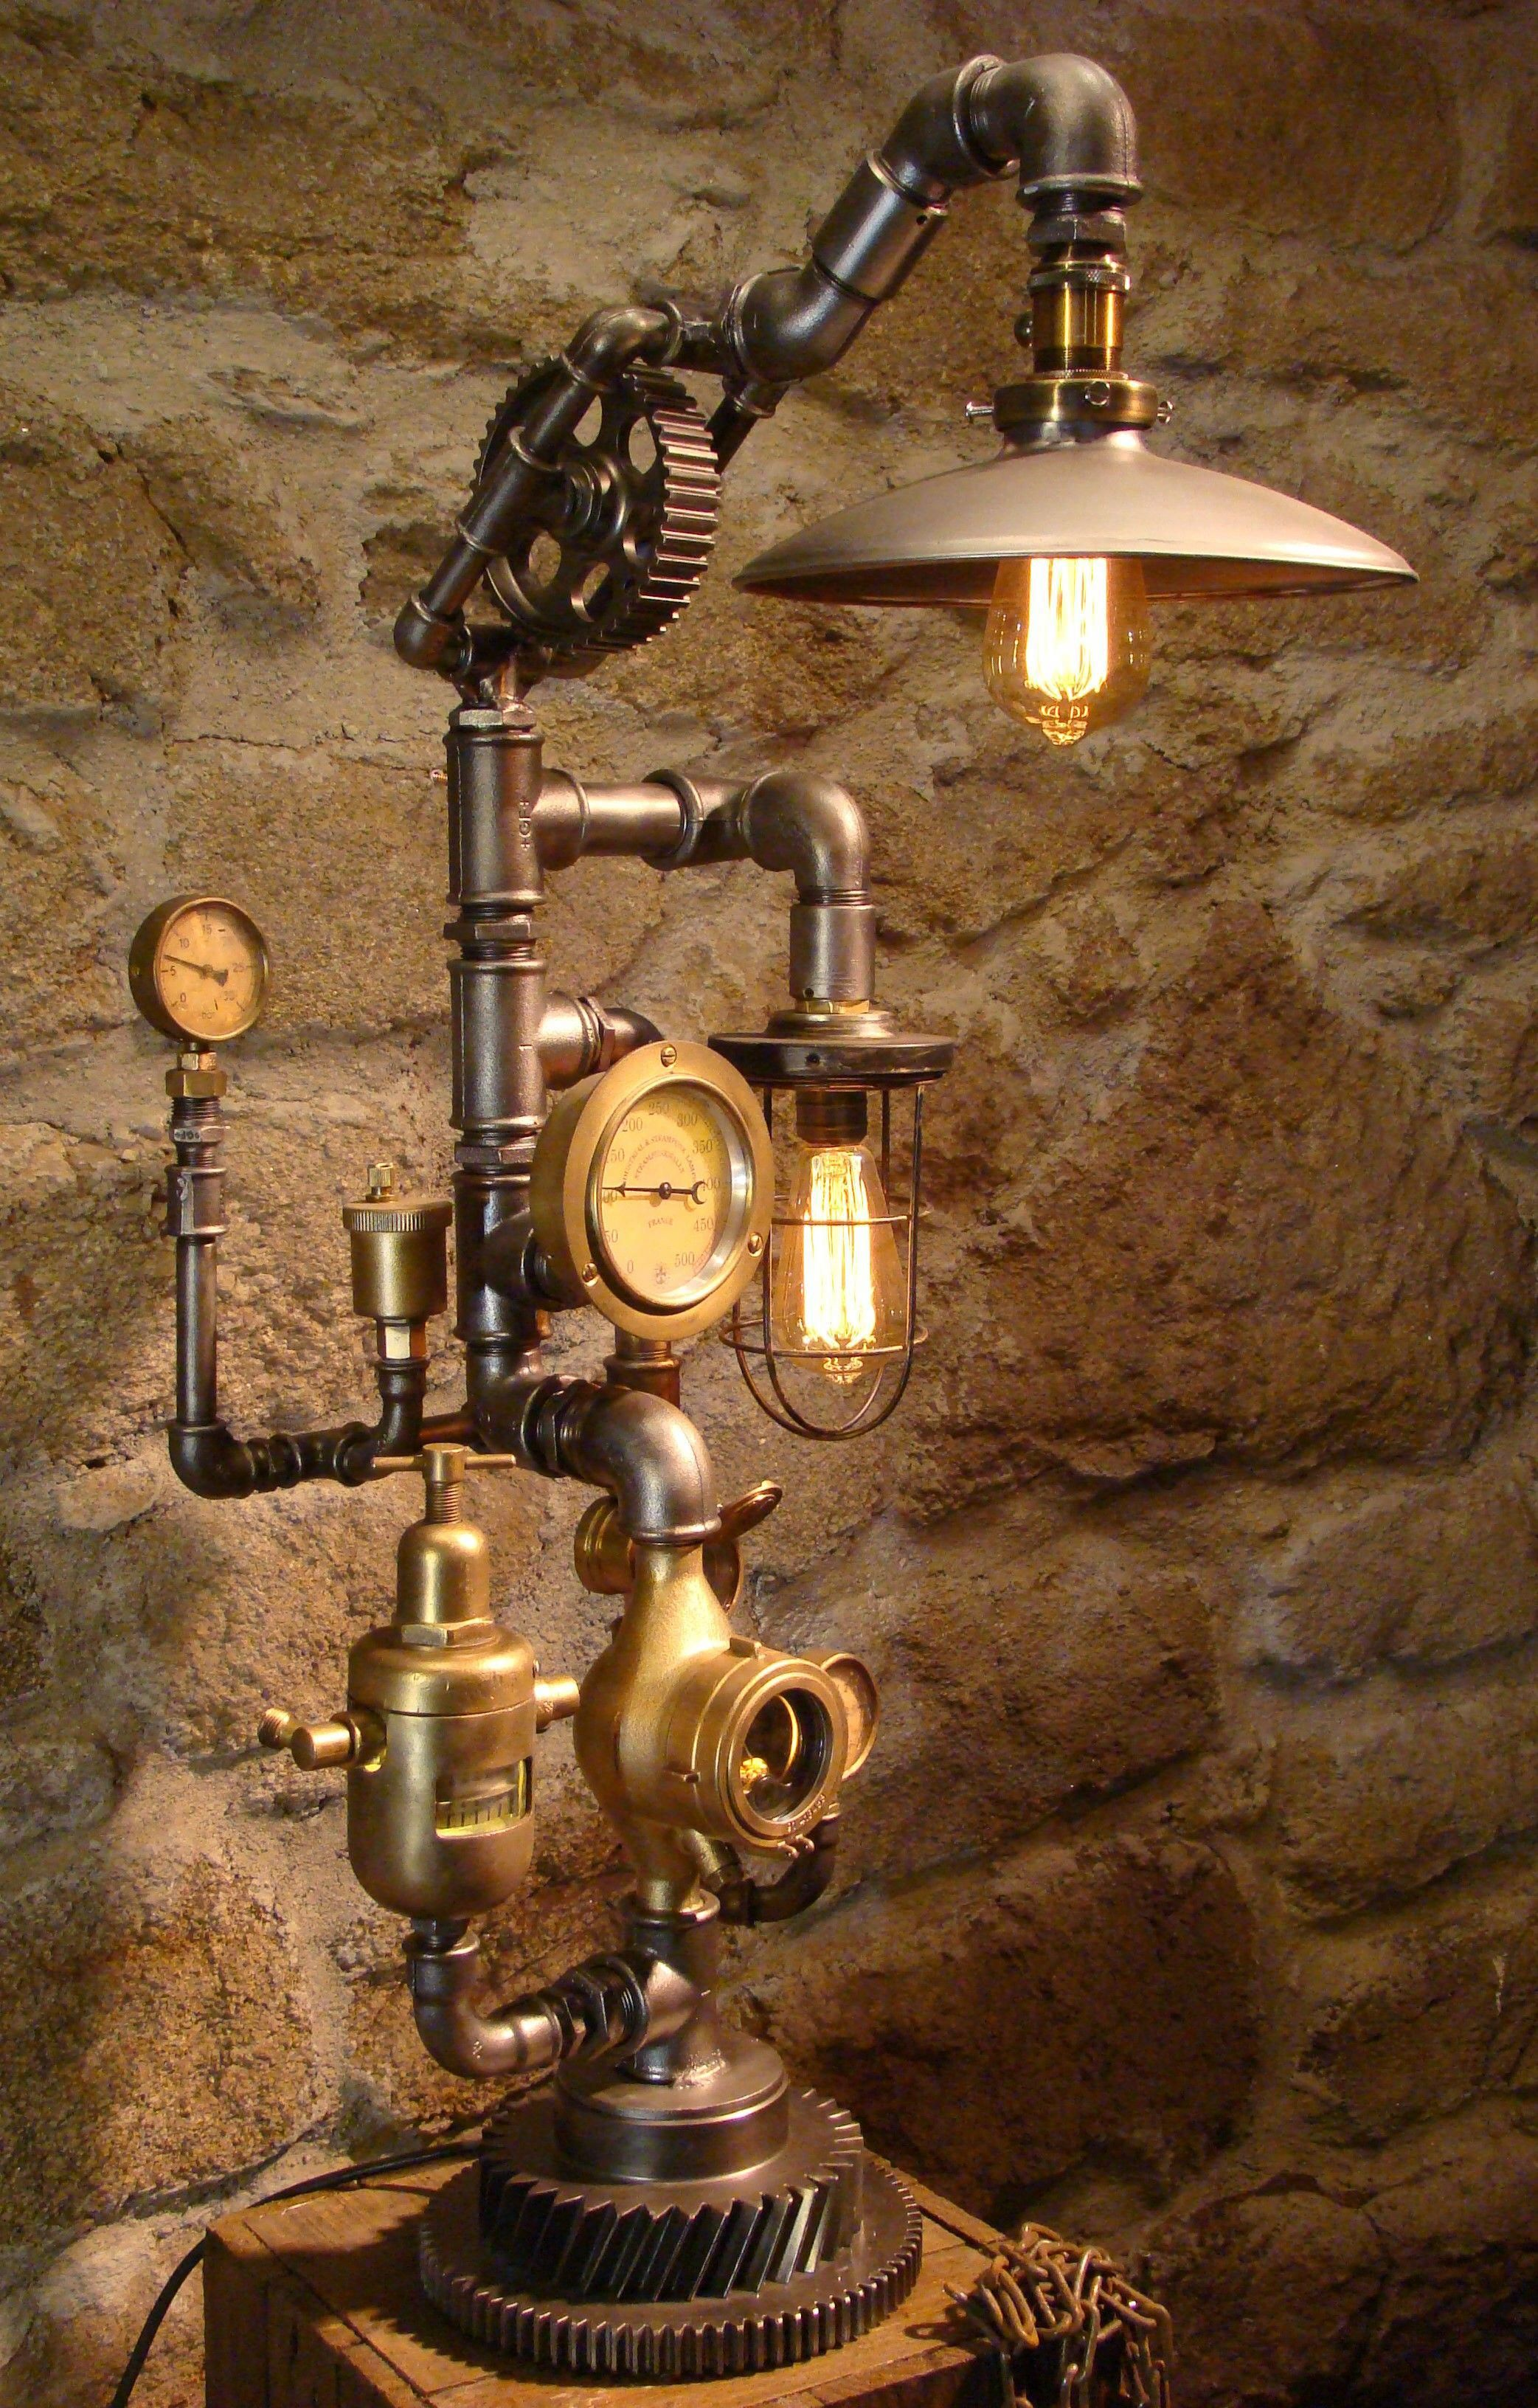 Steampunk Lamp With Two Edison Bulbs And Led Light In Steam Gauge And Also In Other Parts M Industrie Stil Lampen Vintage Industrial Mobel Ausgefallene Lampen